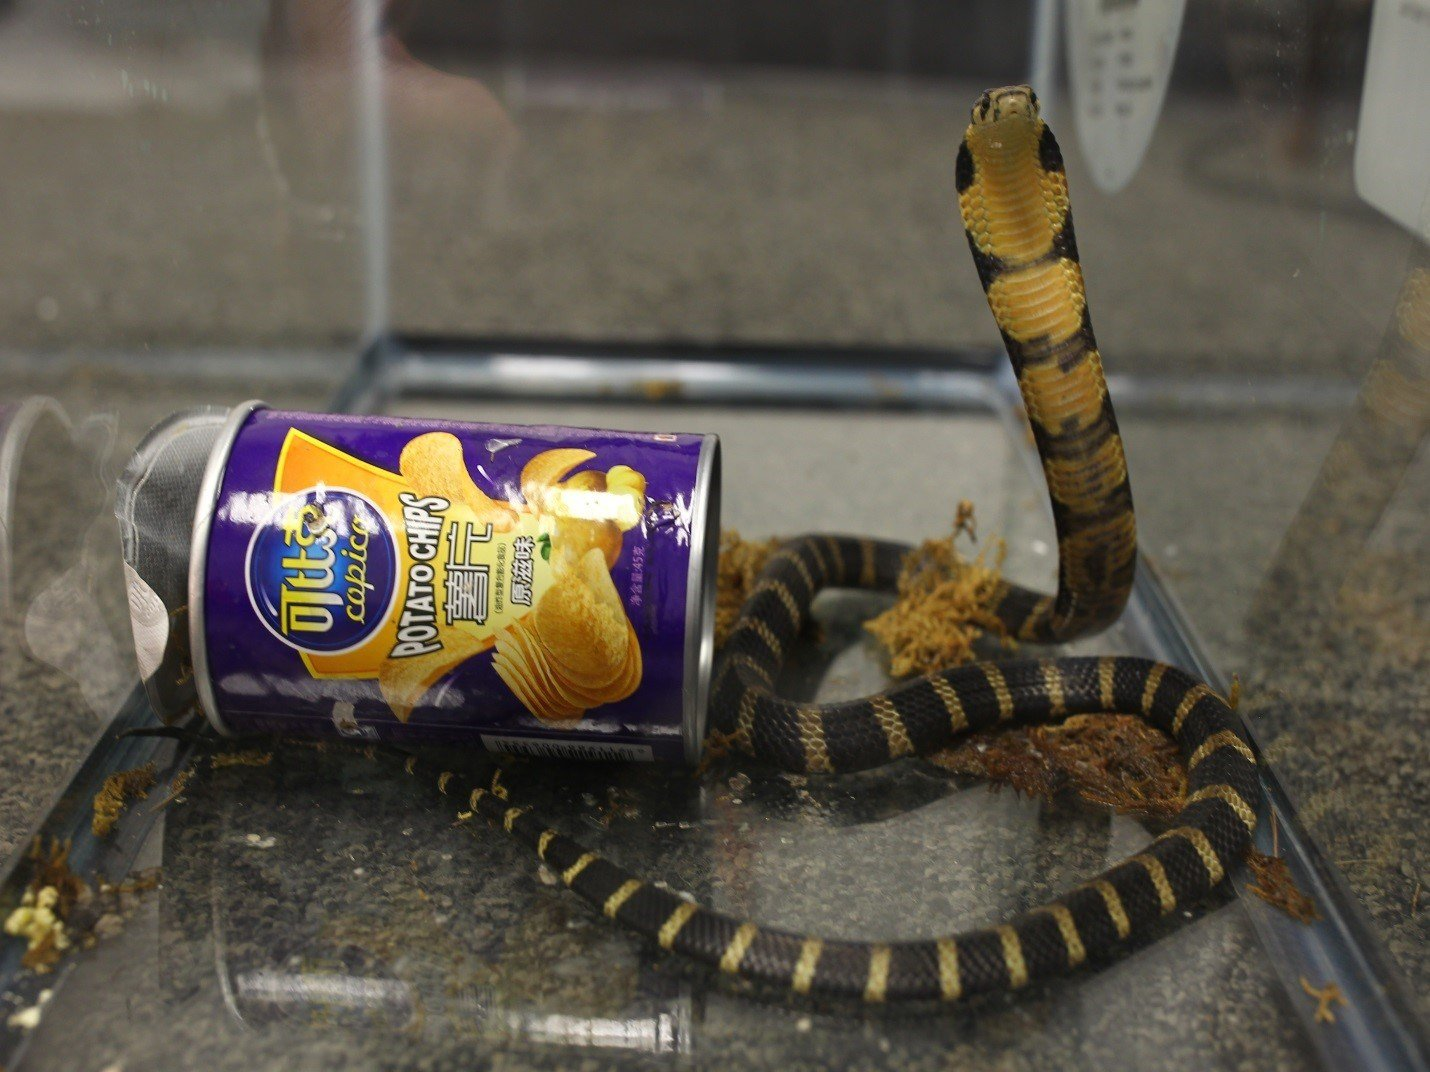 Man arrested for smuggling cobras in potato chip cans